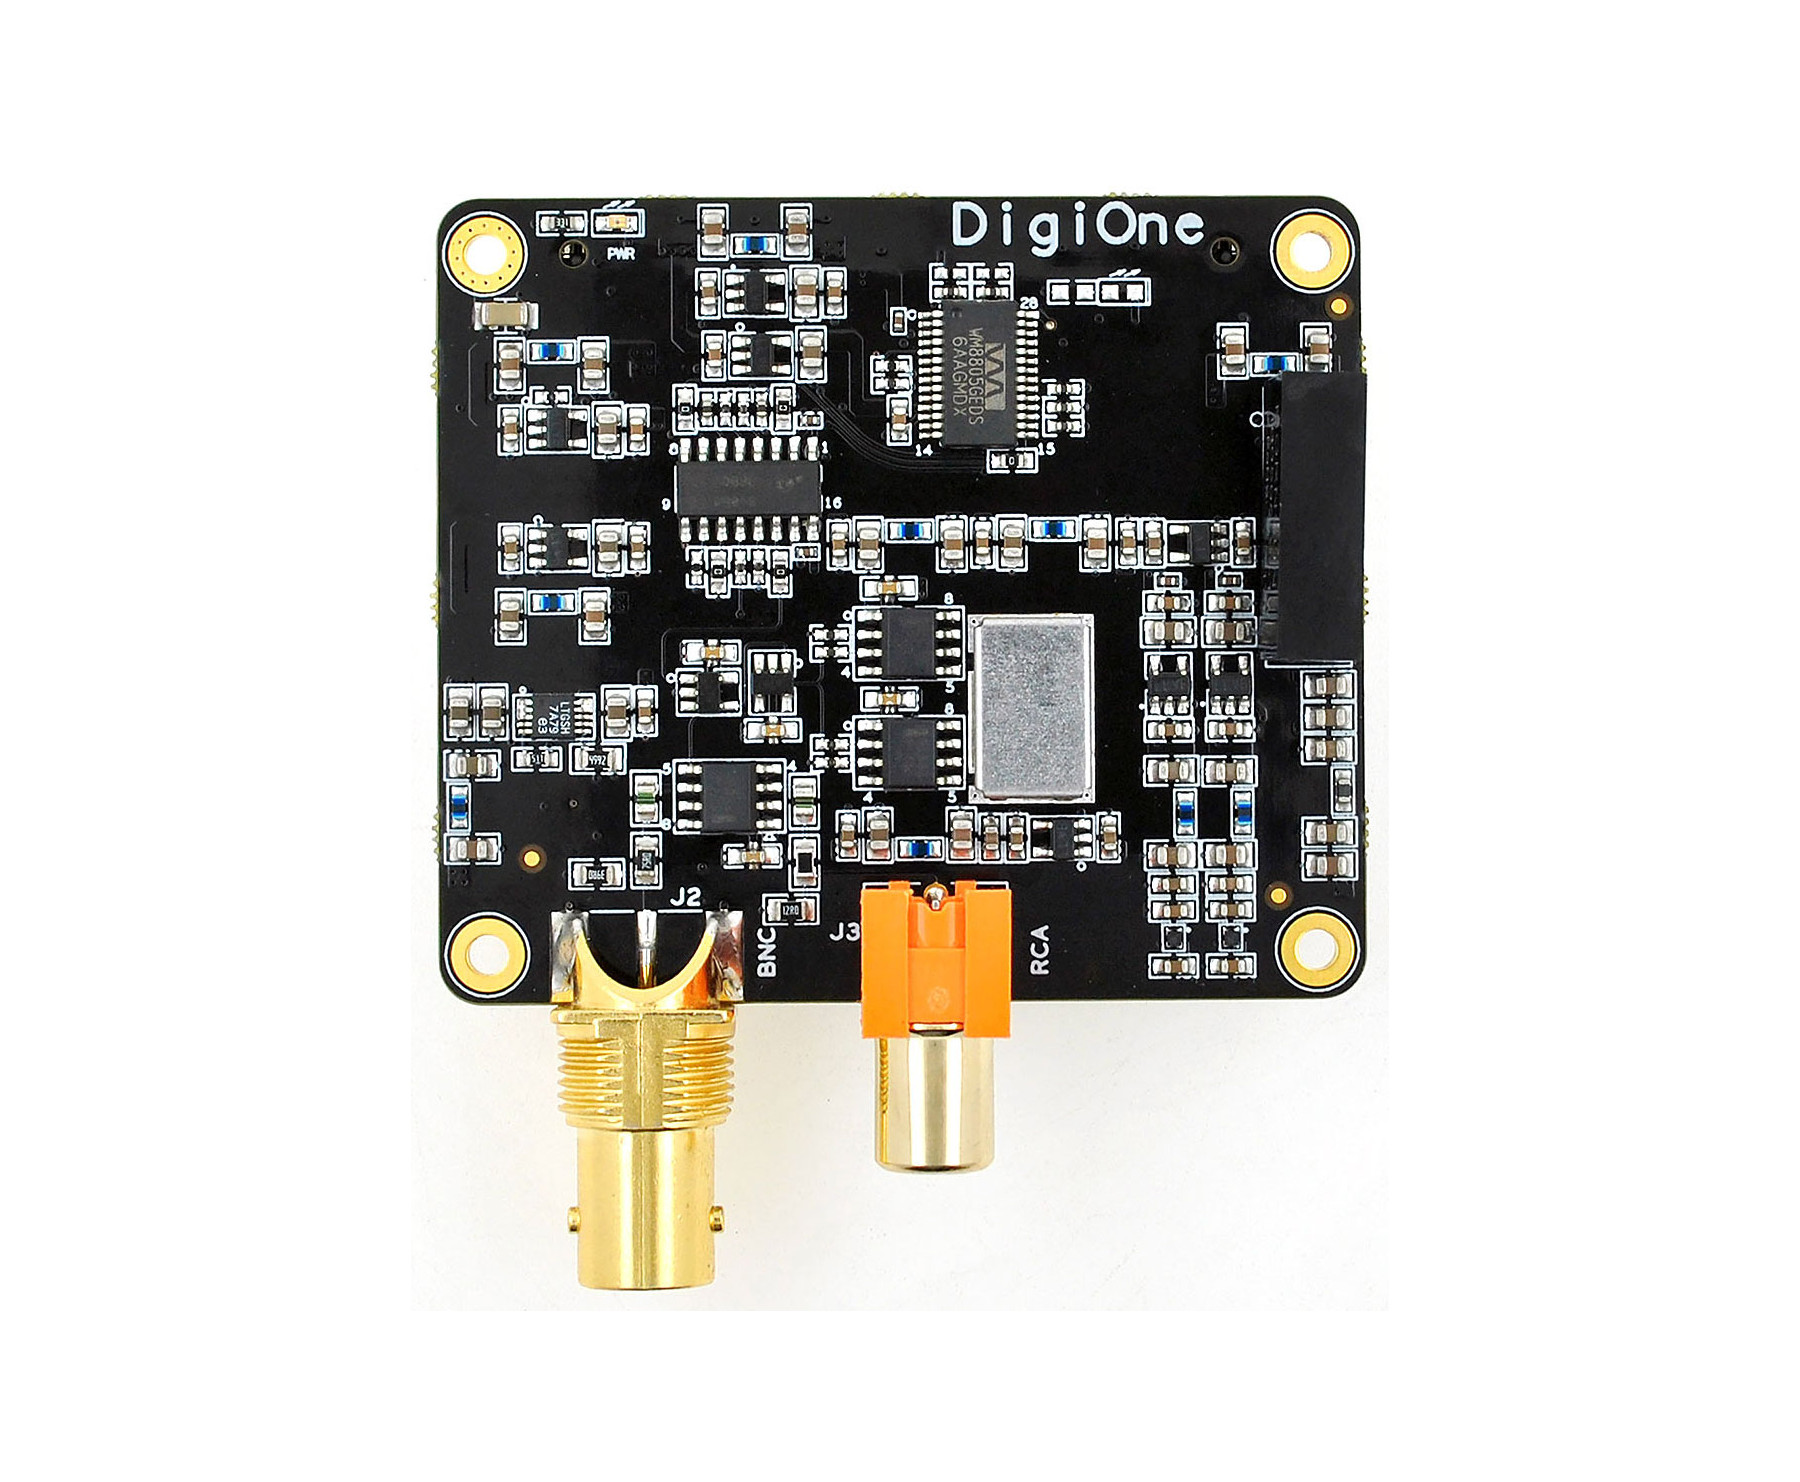 DigiOne – Digital audio output (S/PDIF) for RPi